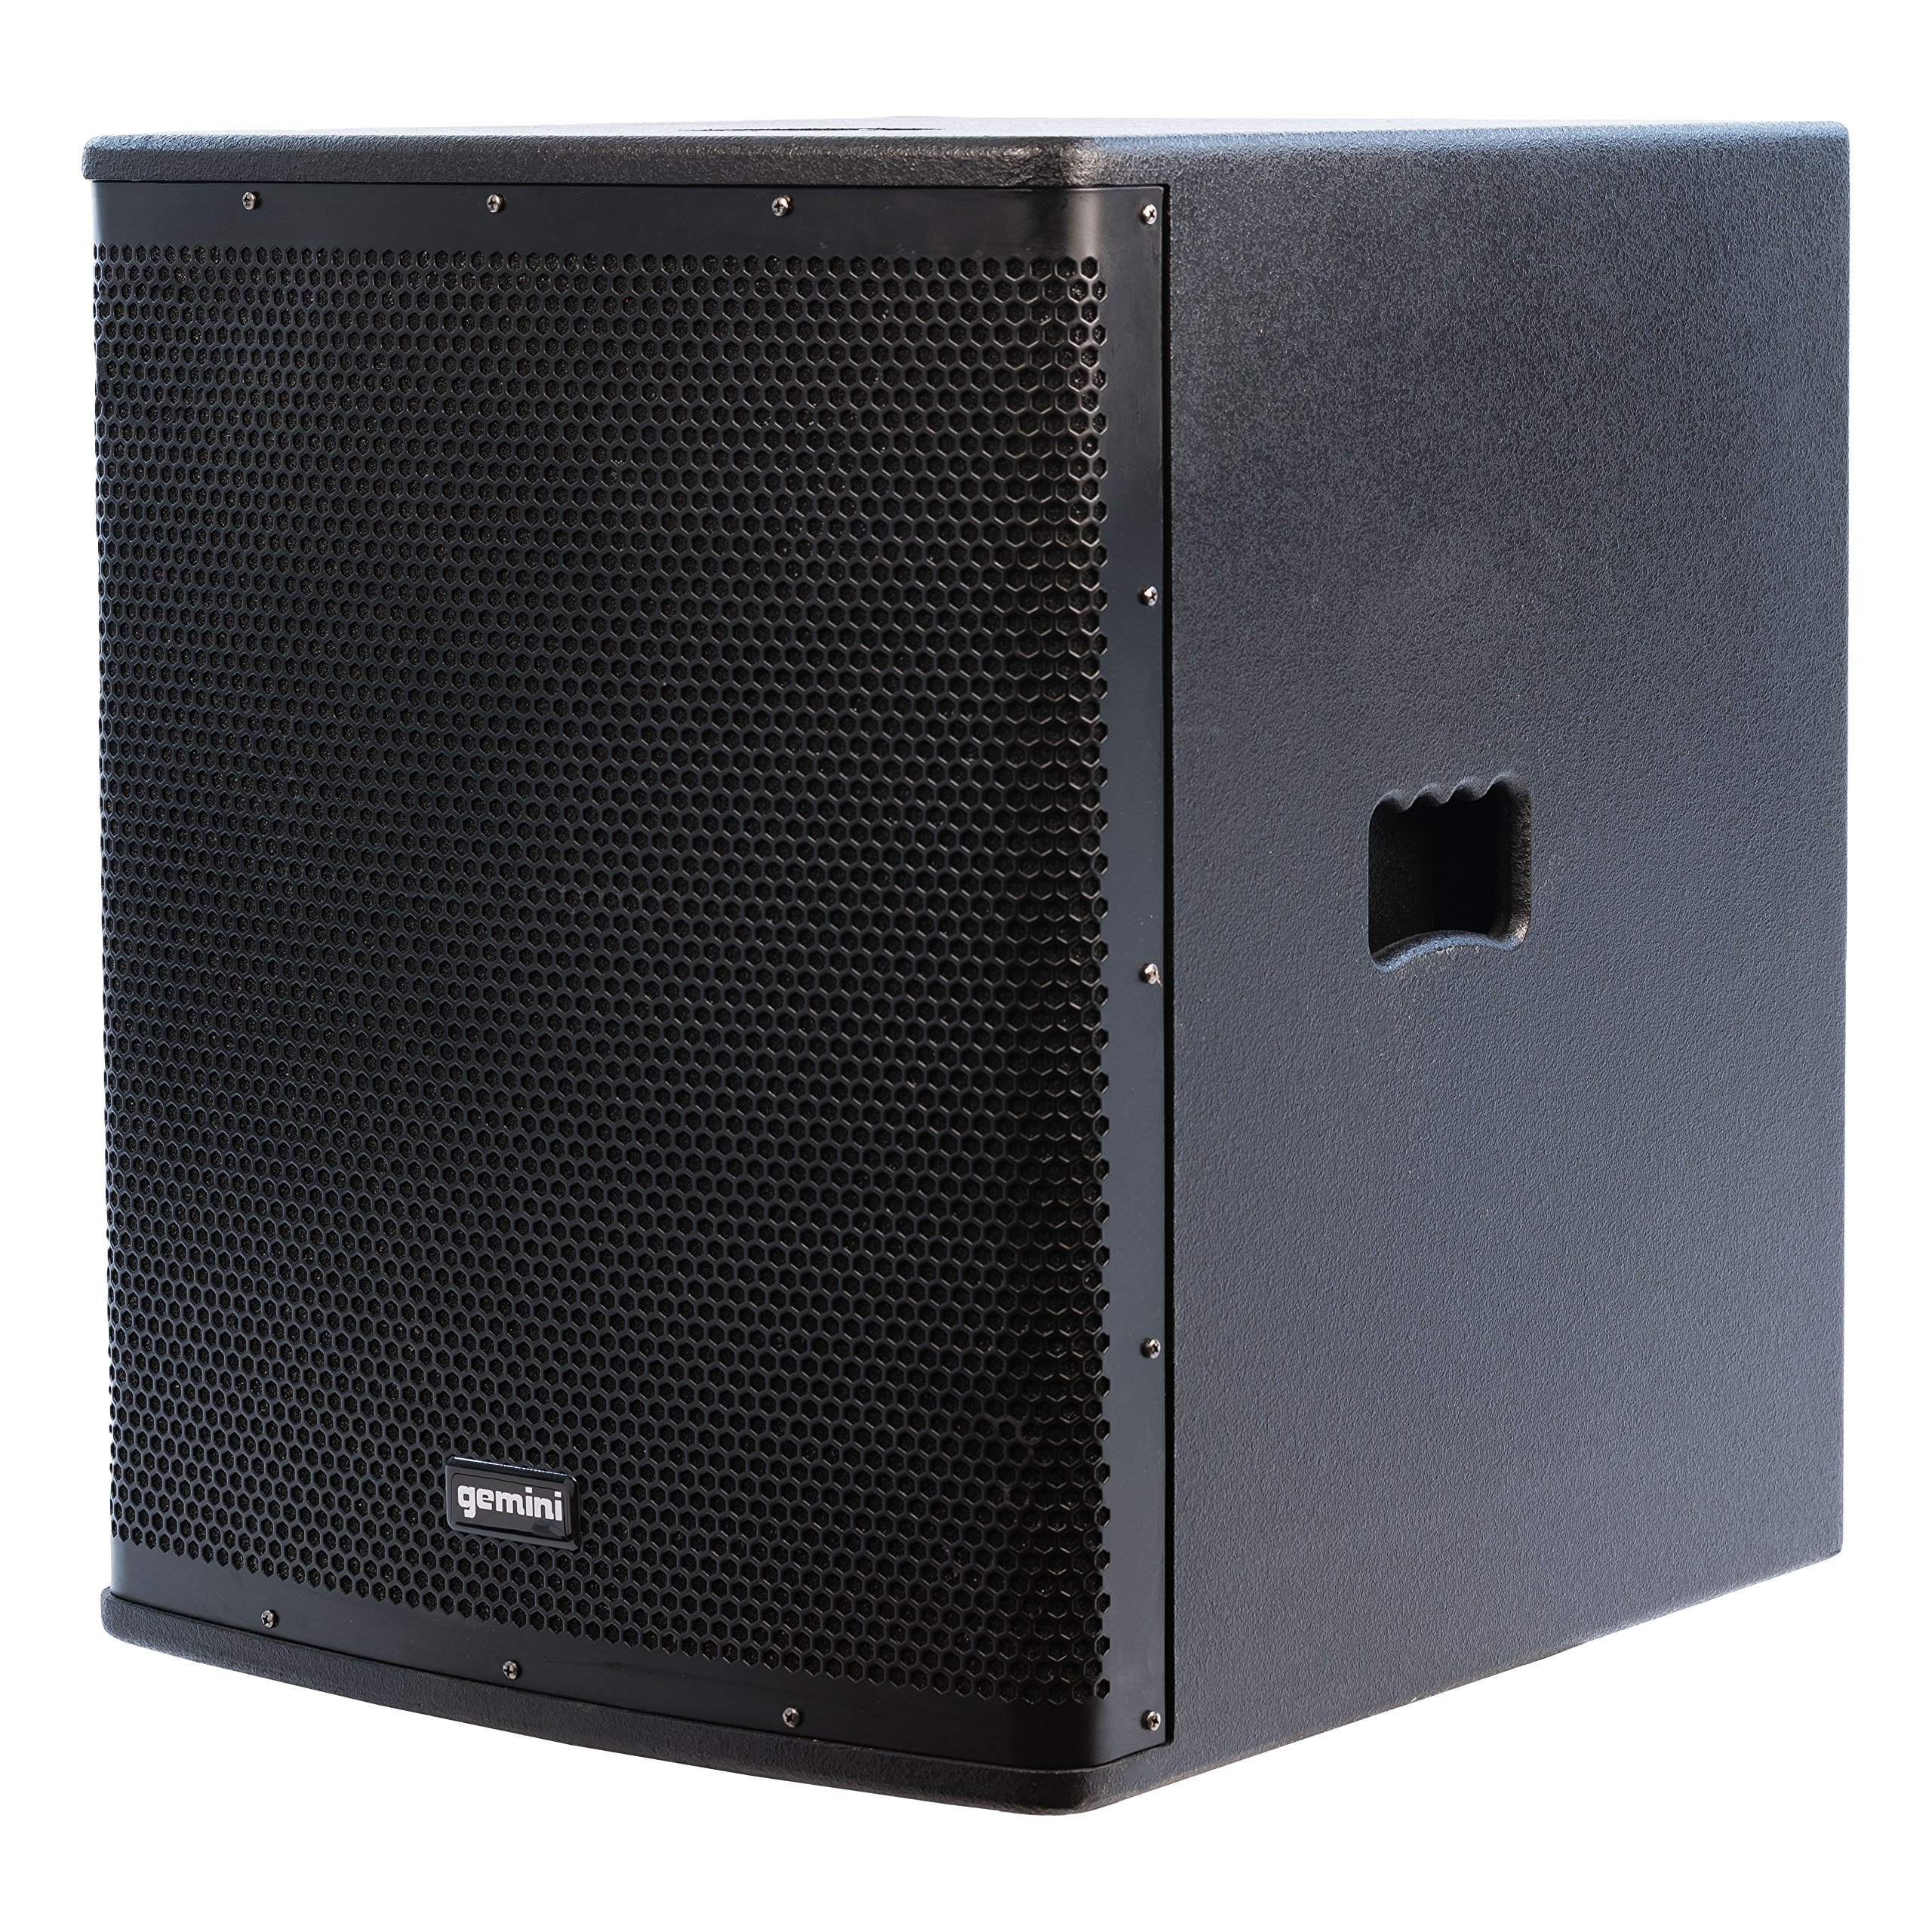 Gemini ZRX Series ZRX-S18P 18-inch Professional Powered Subwoofer with 1,600 Watts Continuous Class D Digital Power